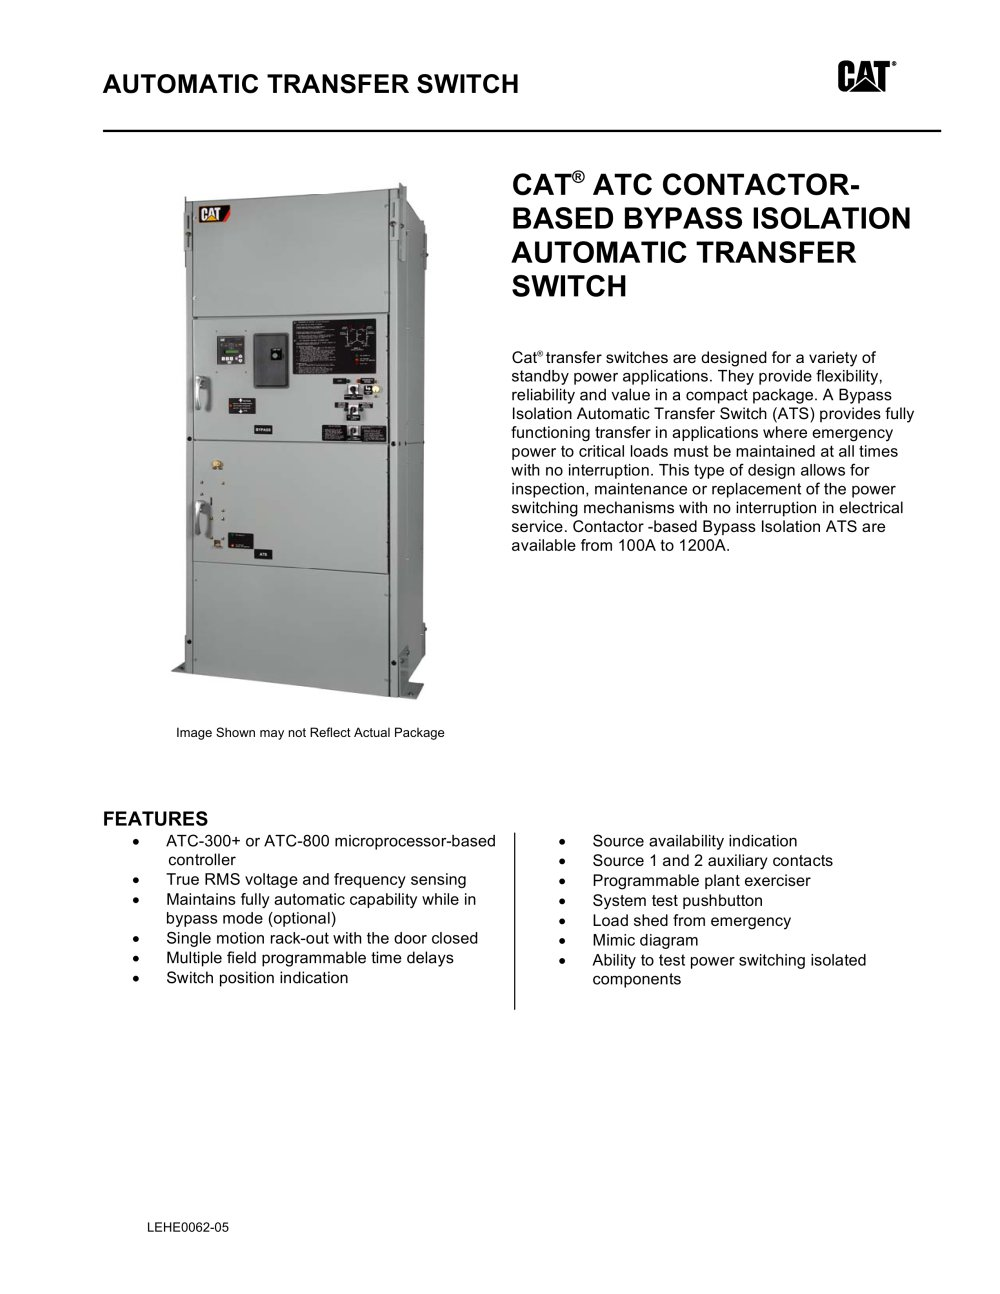 medium resolution of atc contactor based bypass isolation transfer switch 1 5 pages